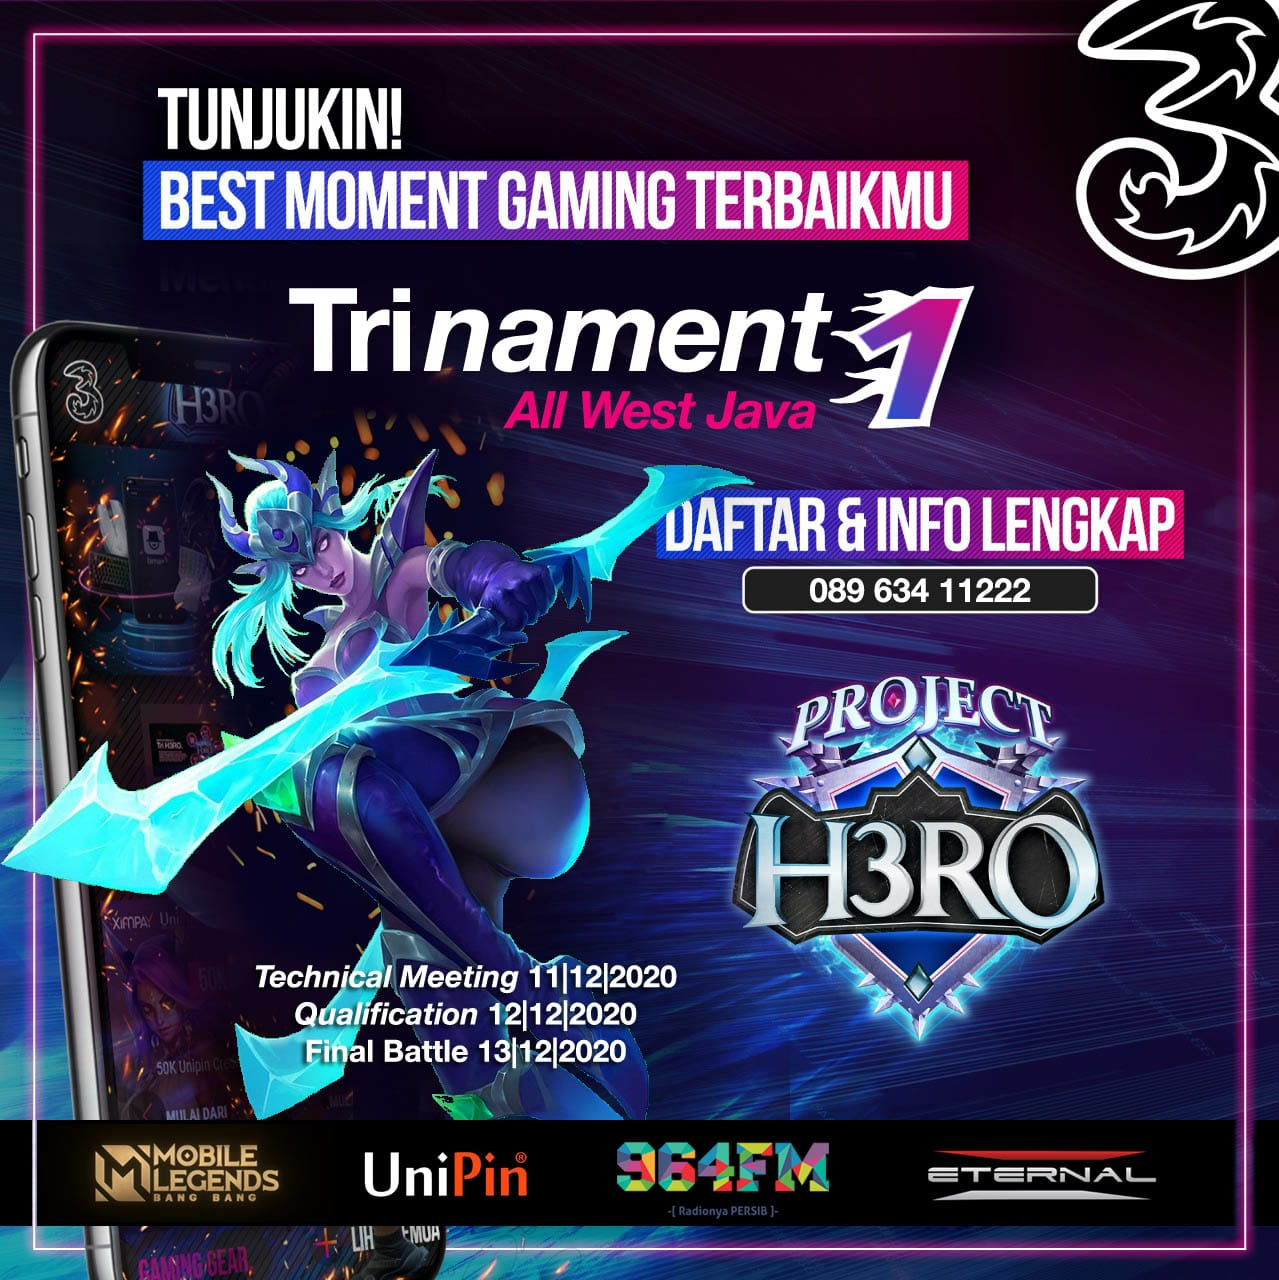 Trinament Heroes Mobile Legends Competition